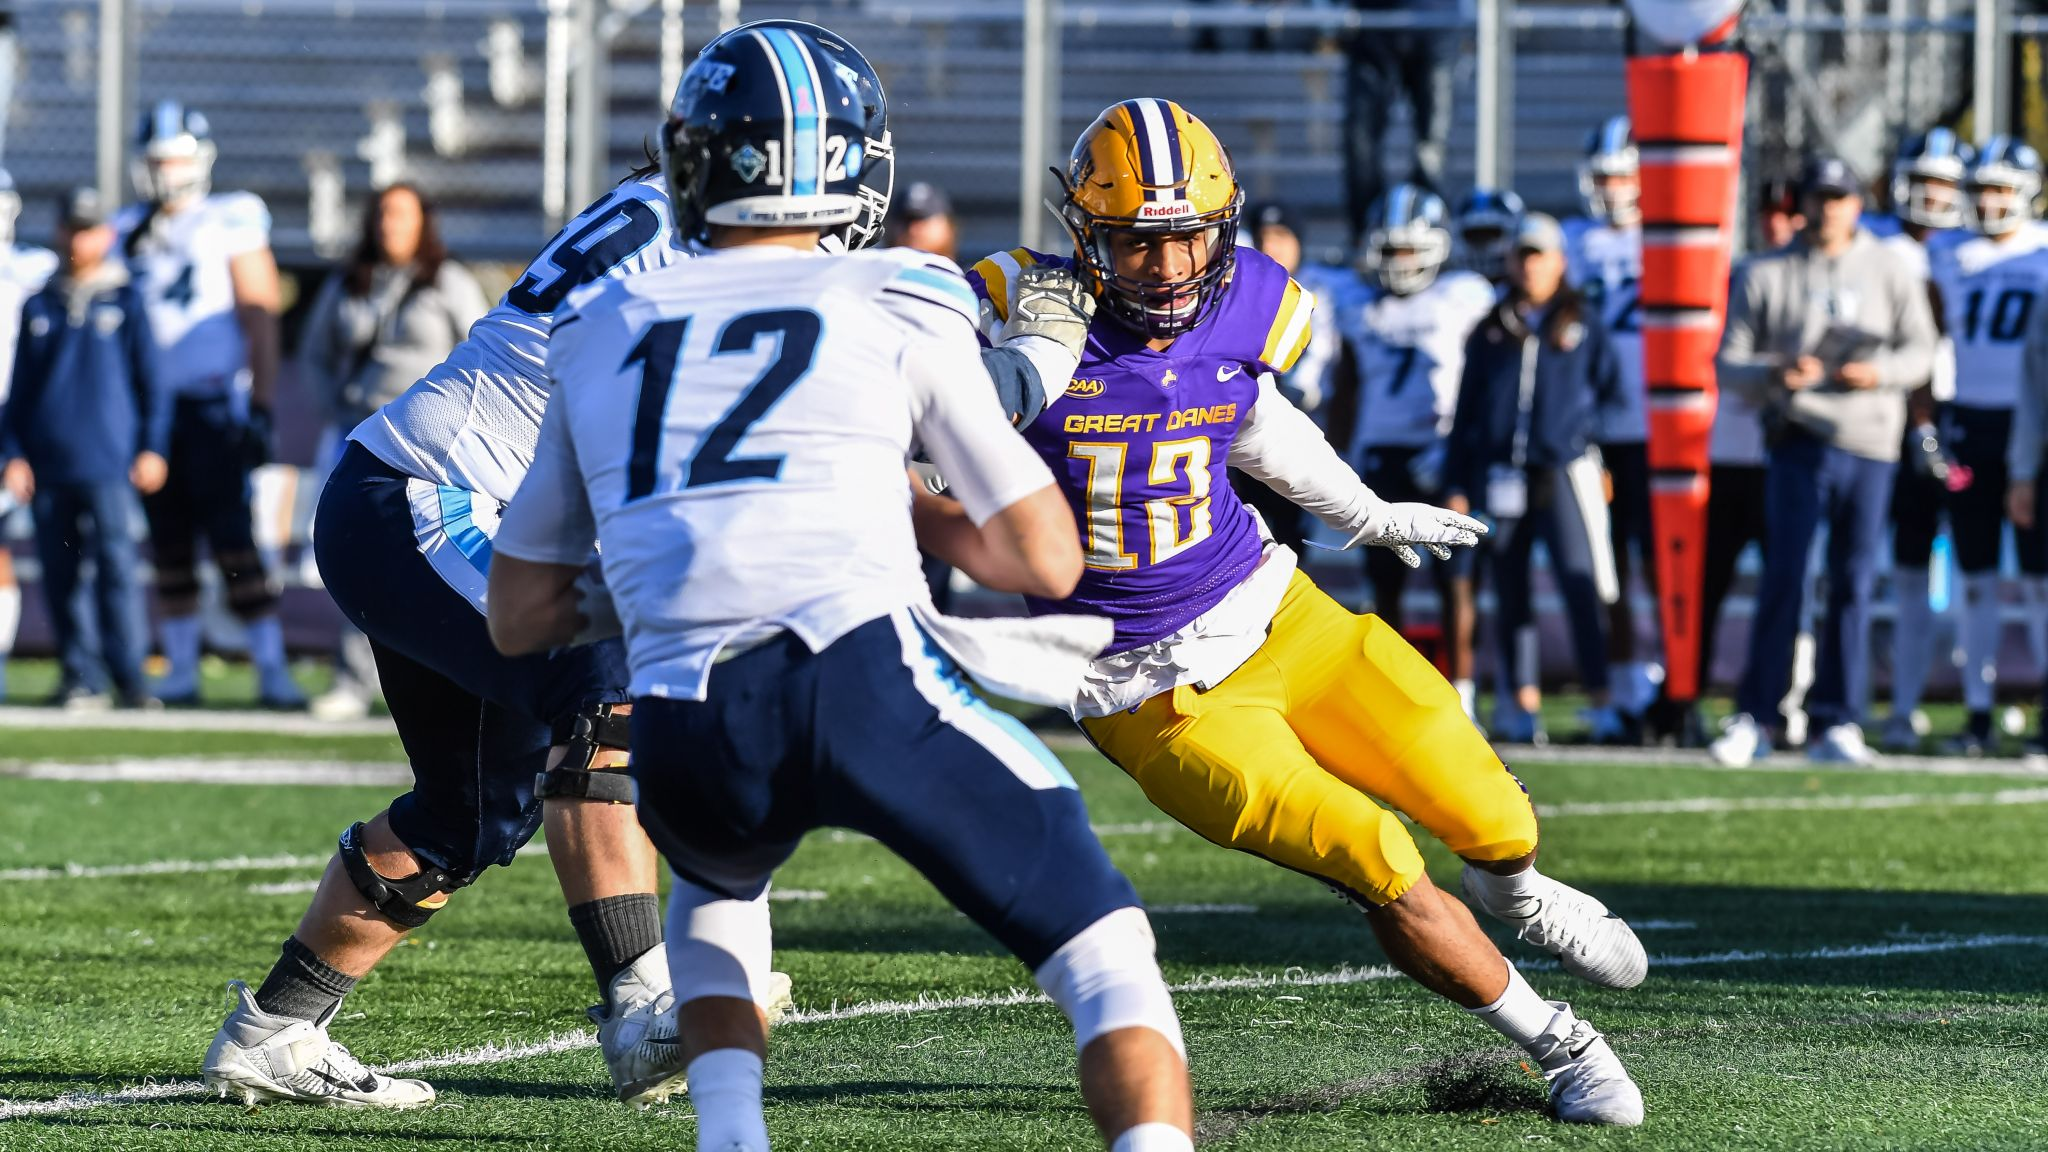 UAlbany football's Eli Mencer overcomes own doubts